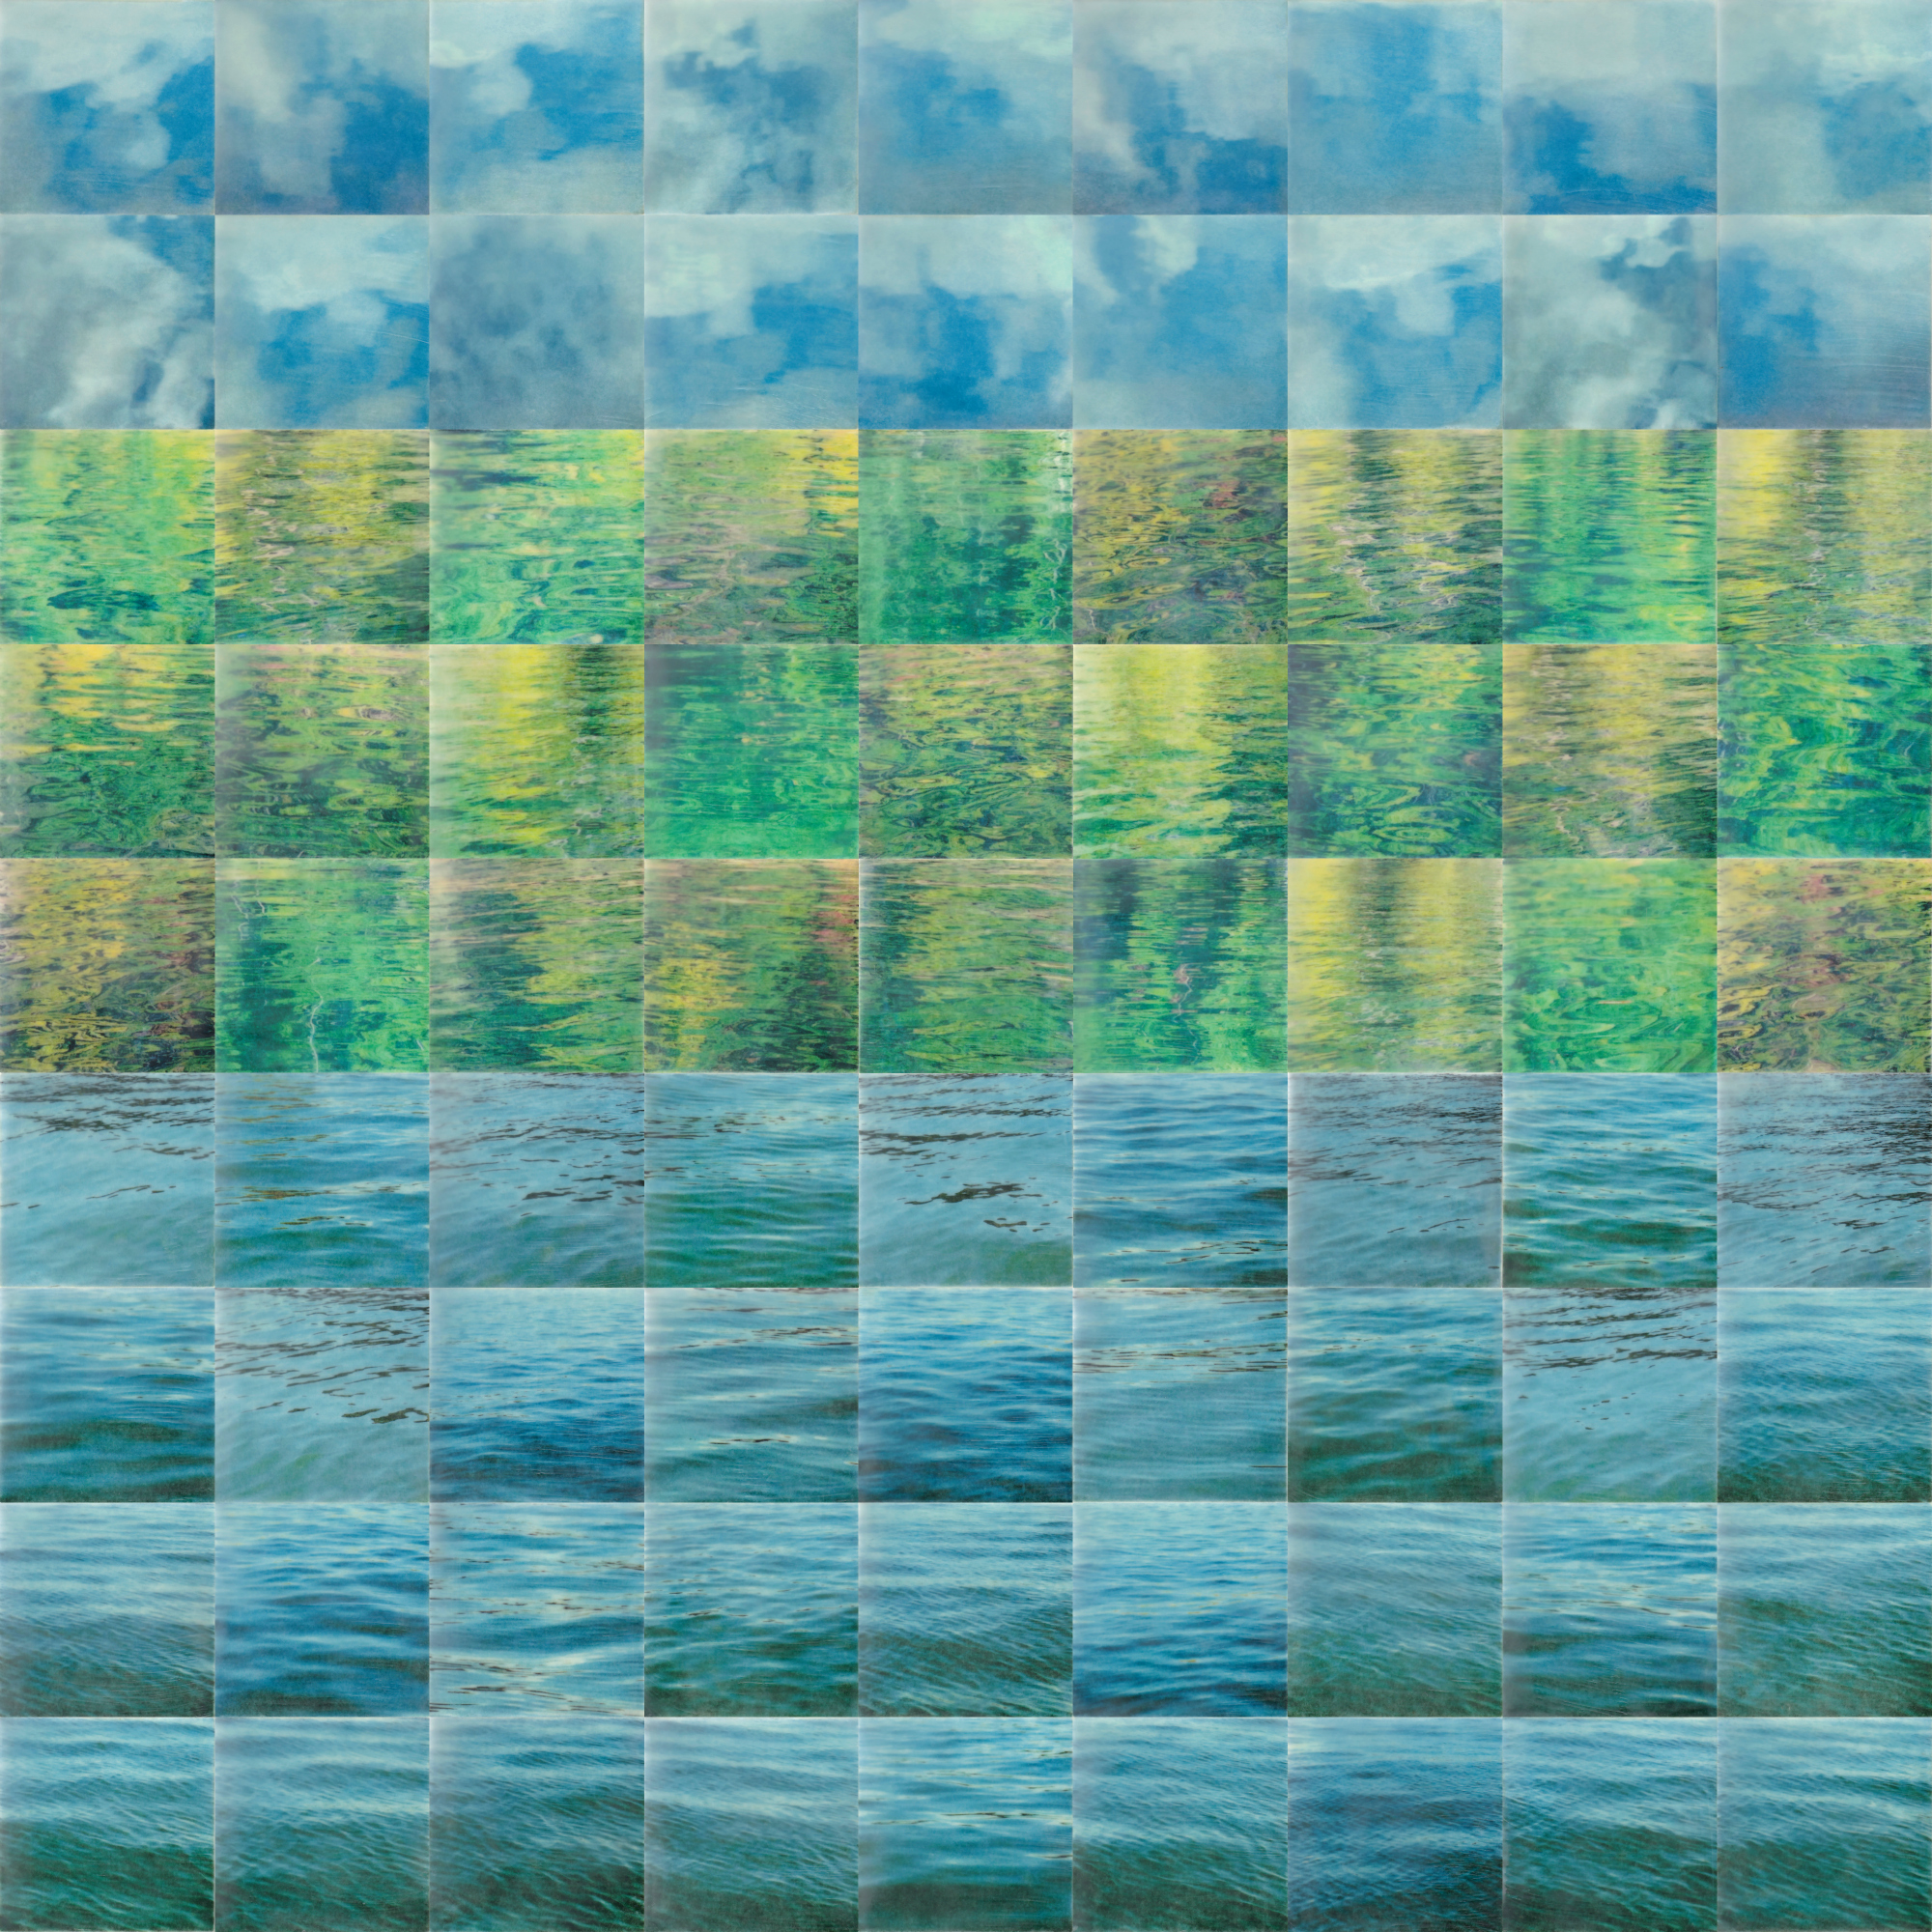 Lakescape by Erin Keane : photography with encaustic beeswax : 36 x 36 inches, framed